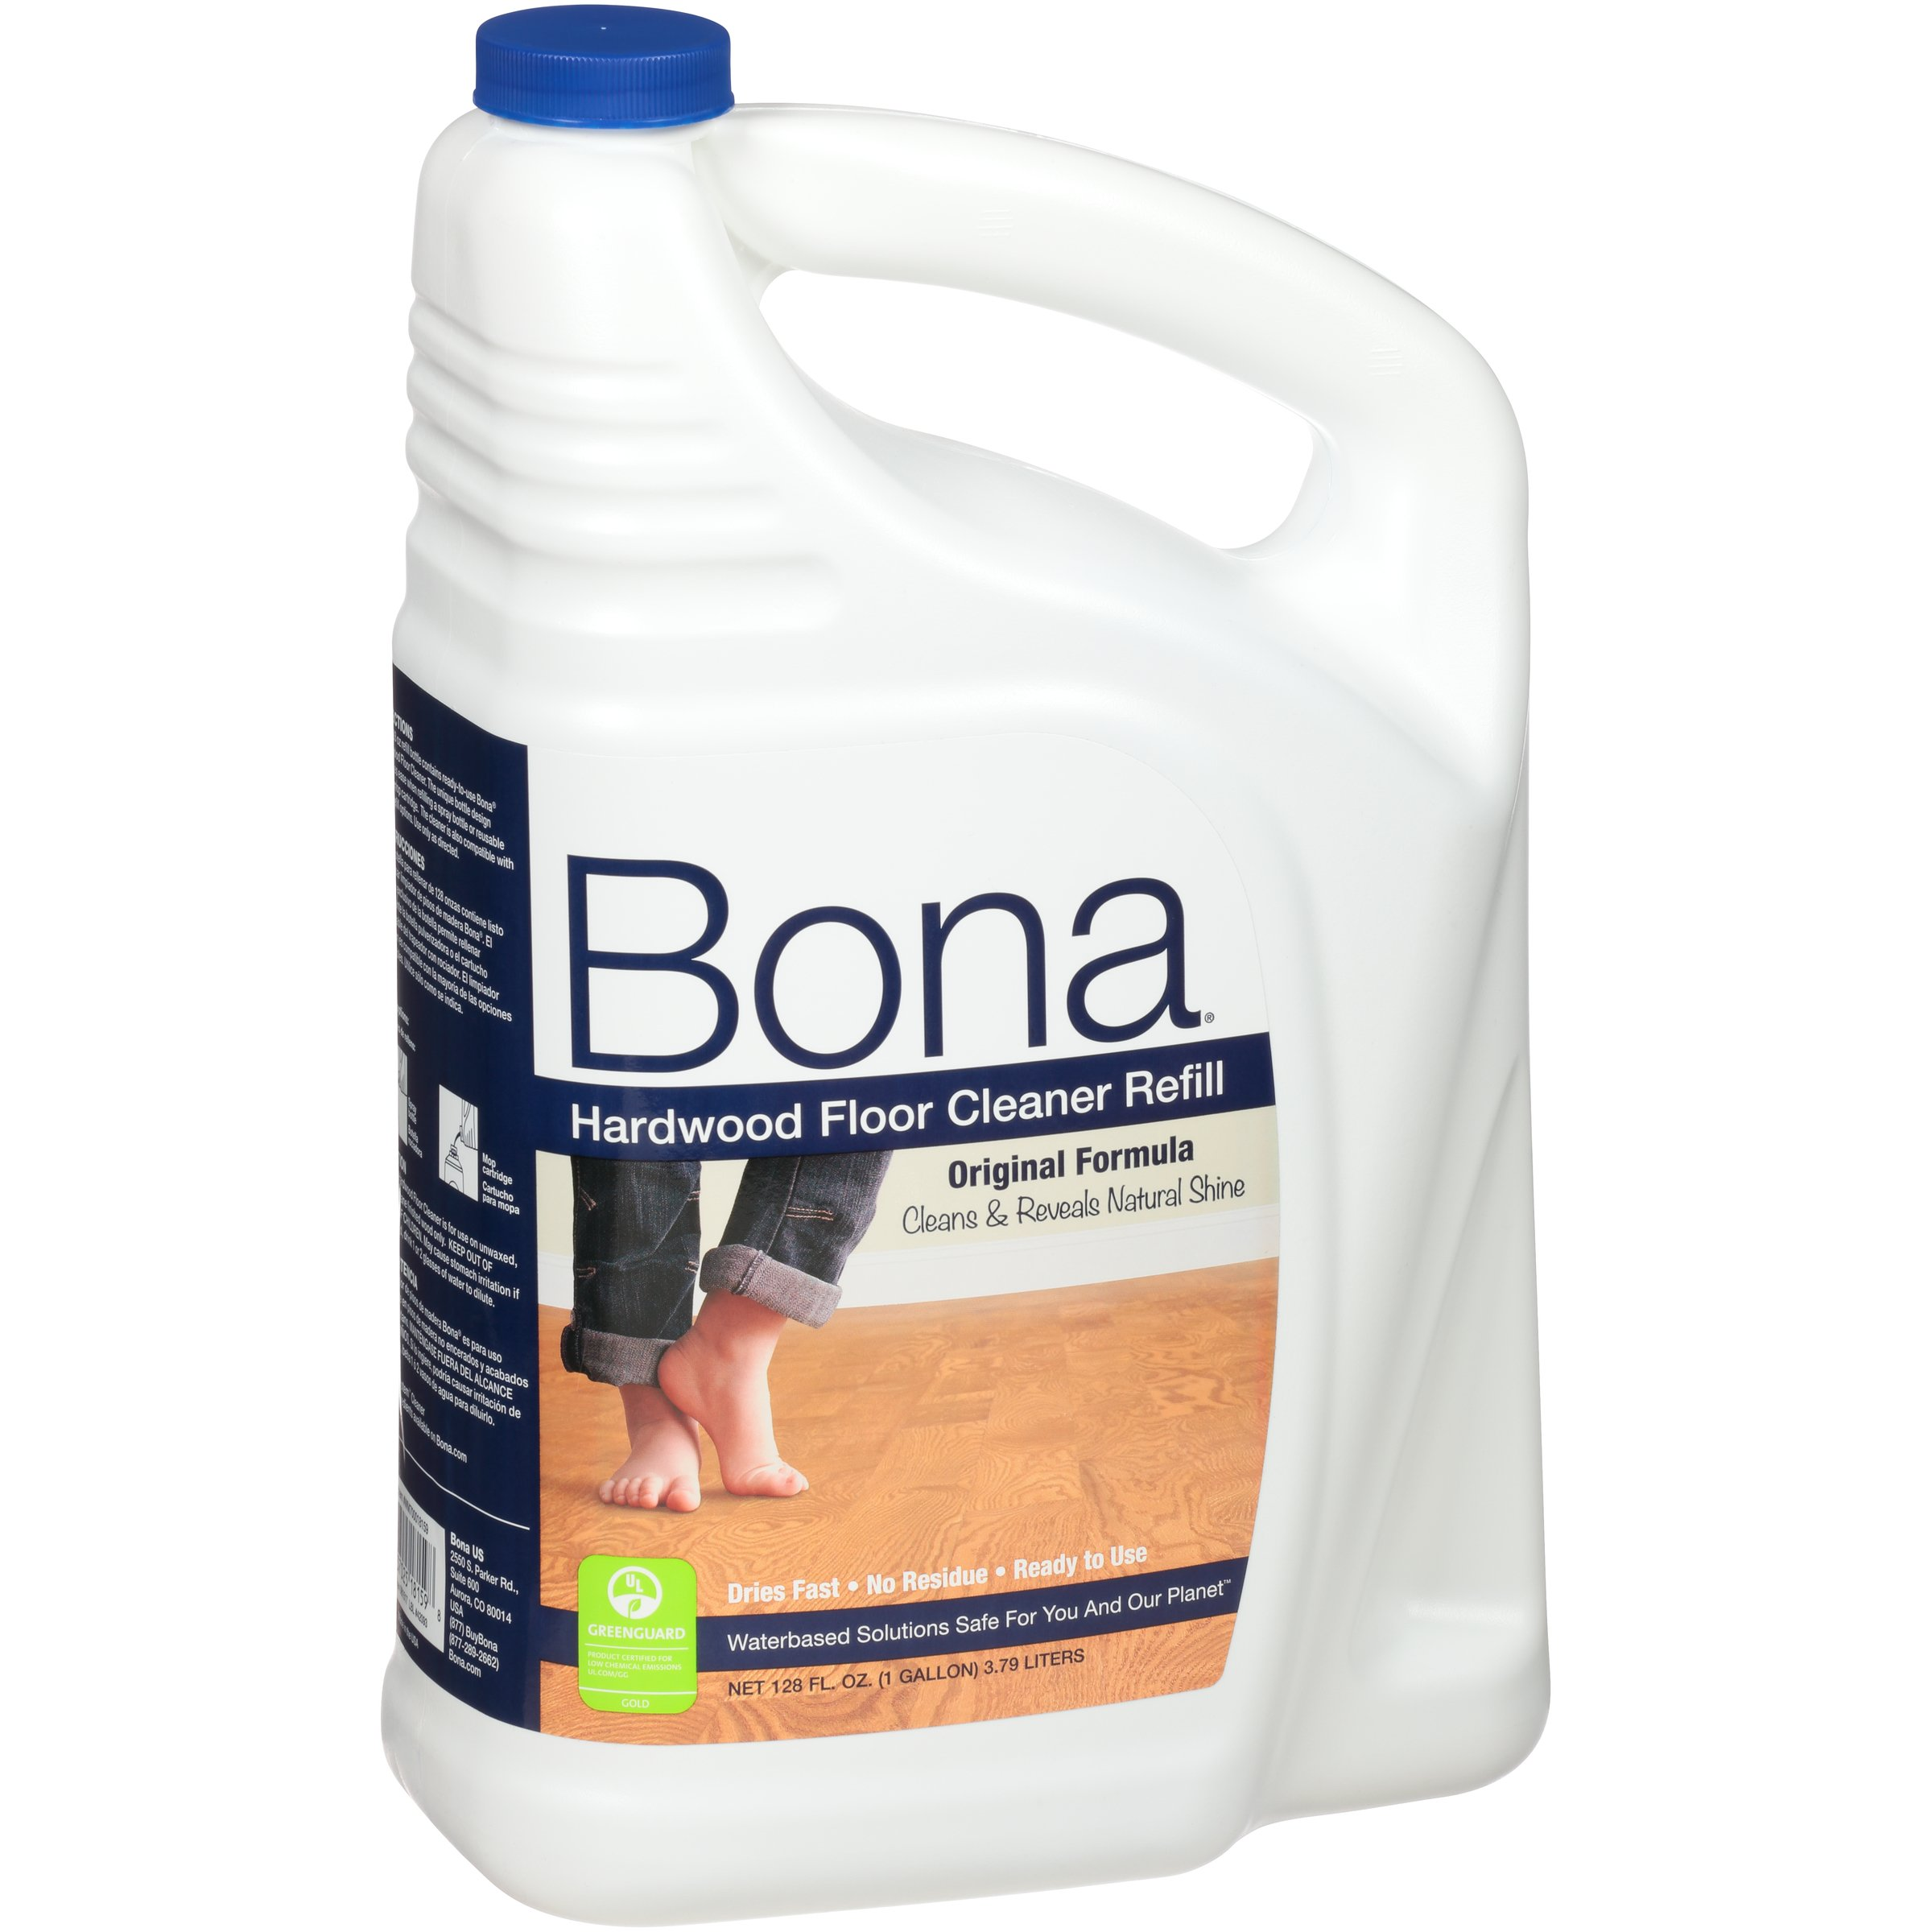 Bona Hardwood Floor Cleaner Refill 128oz by Bona